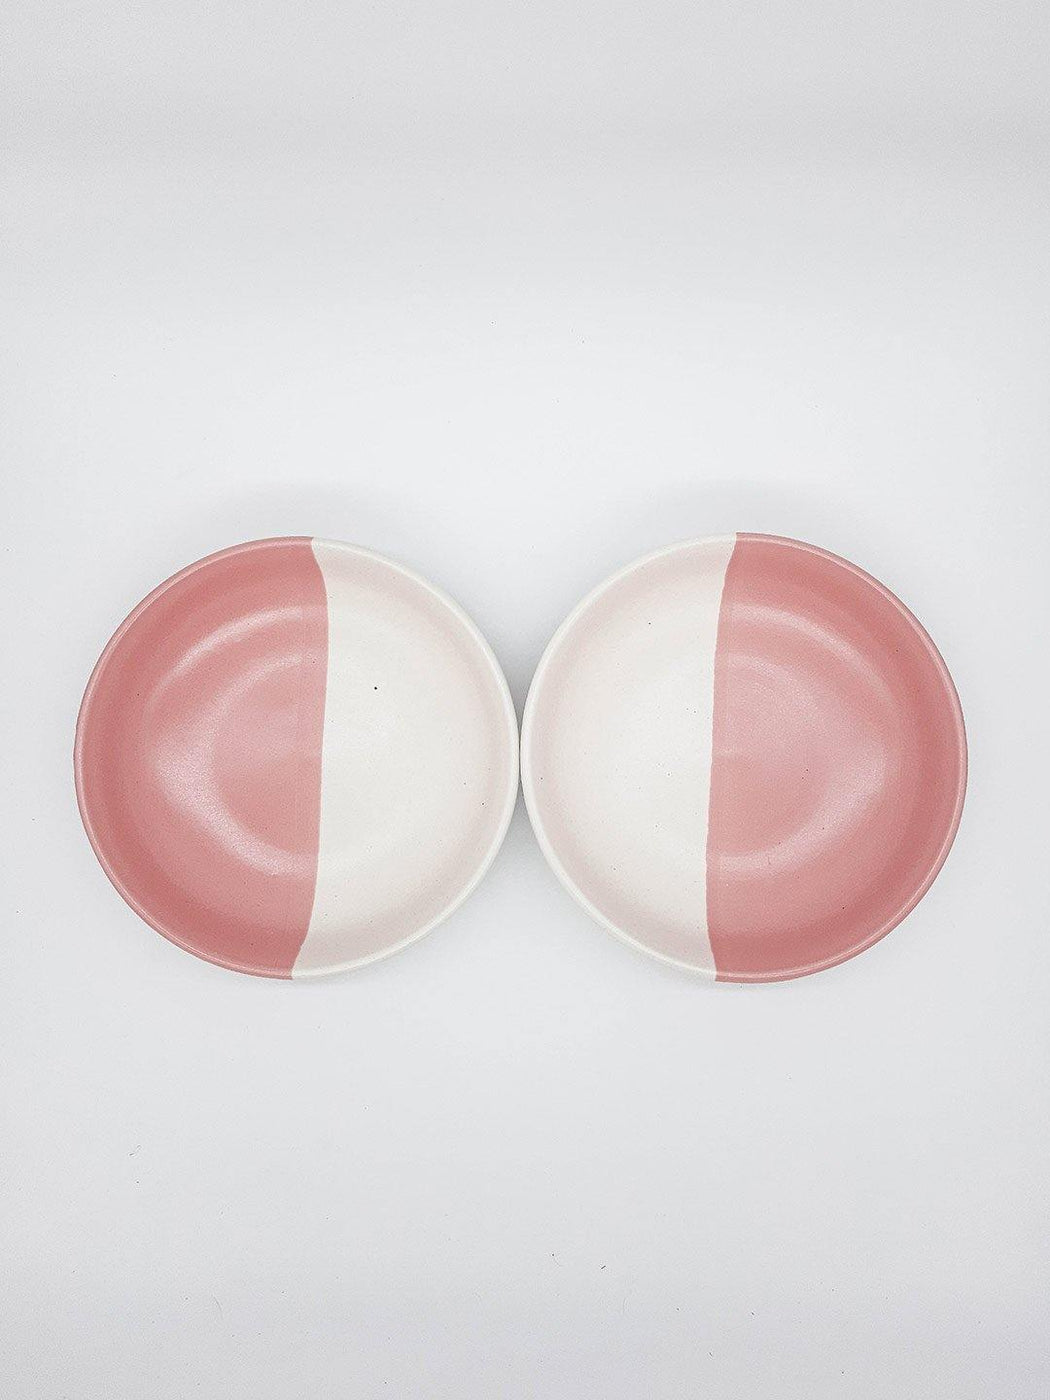 Kypelo Bowl Pink - Set of 2 - Thevasa